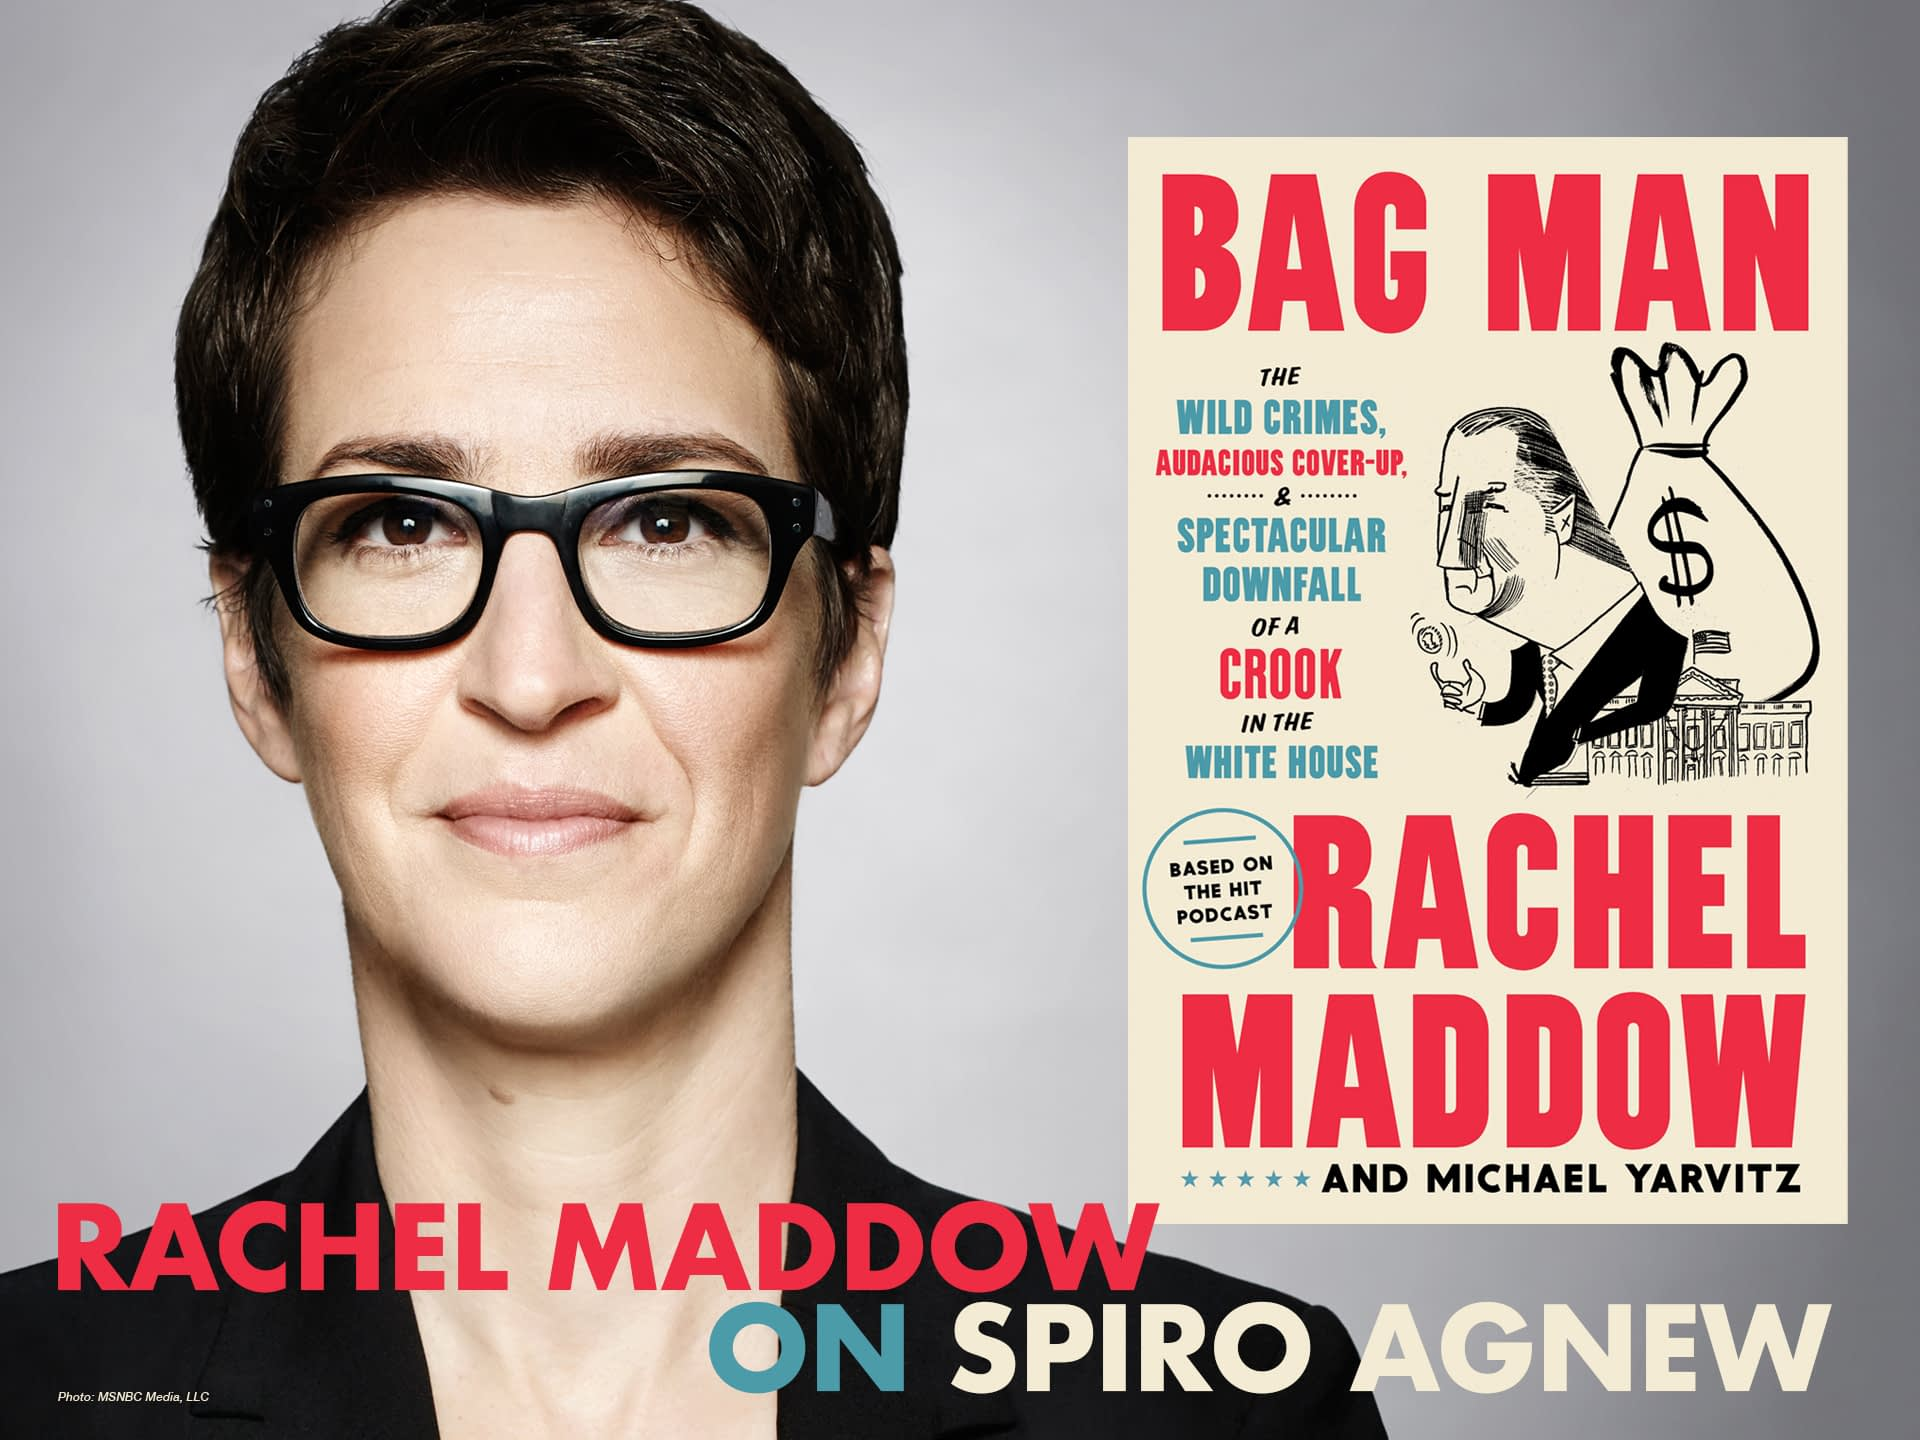 Rachel Maddow on Spiro Agnew - Bag Man: The Wild Crimes, Audacious Cover-Up, and Spectacular Downfall of a Brazen Crook in the White House - Blowout